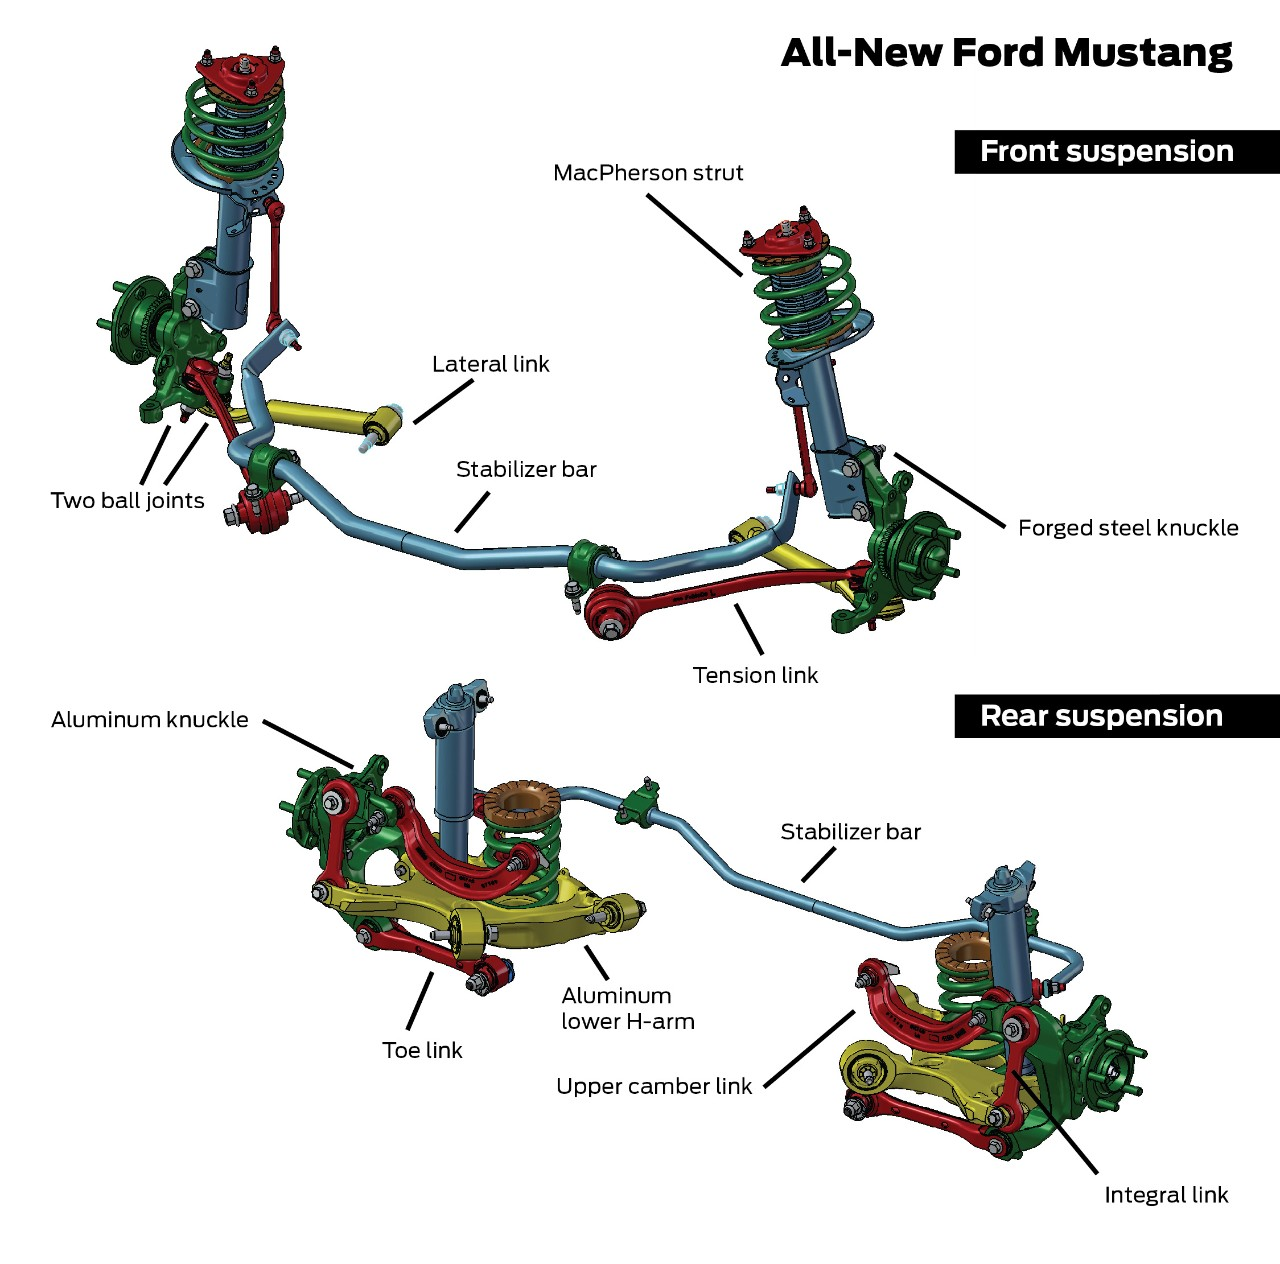 2004 Jeep Grand Cherokee Front Suspension Diagram Nemetas Axle Upgrades Sunray Engineering 1550 9 Inch Photo 8987432 Ford Mustang Images Gallery